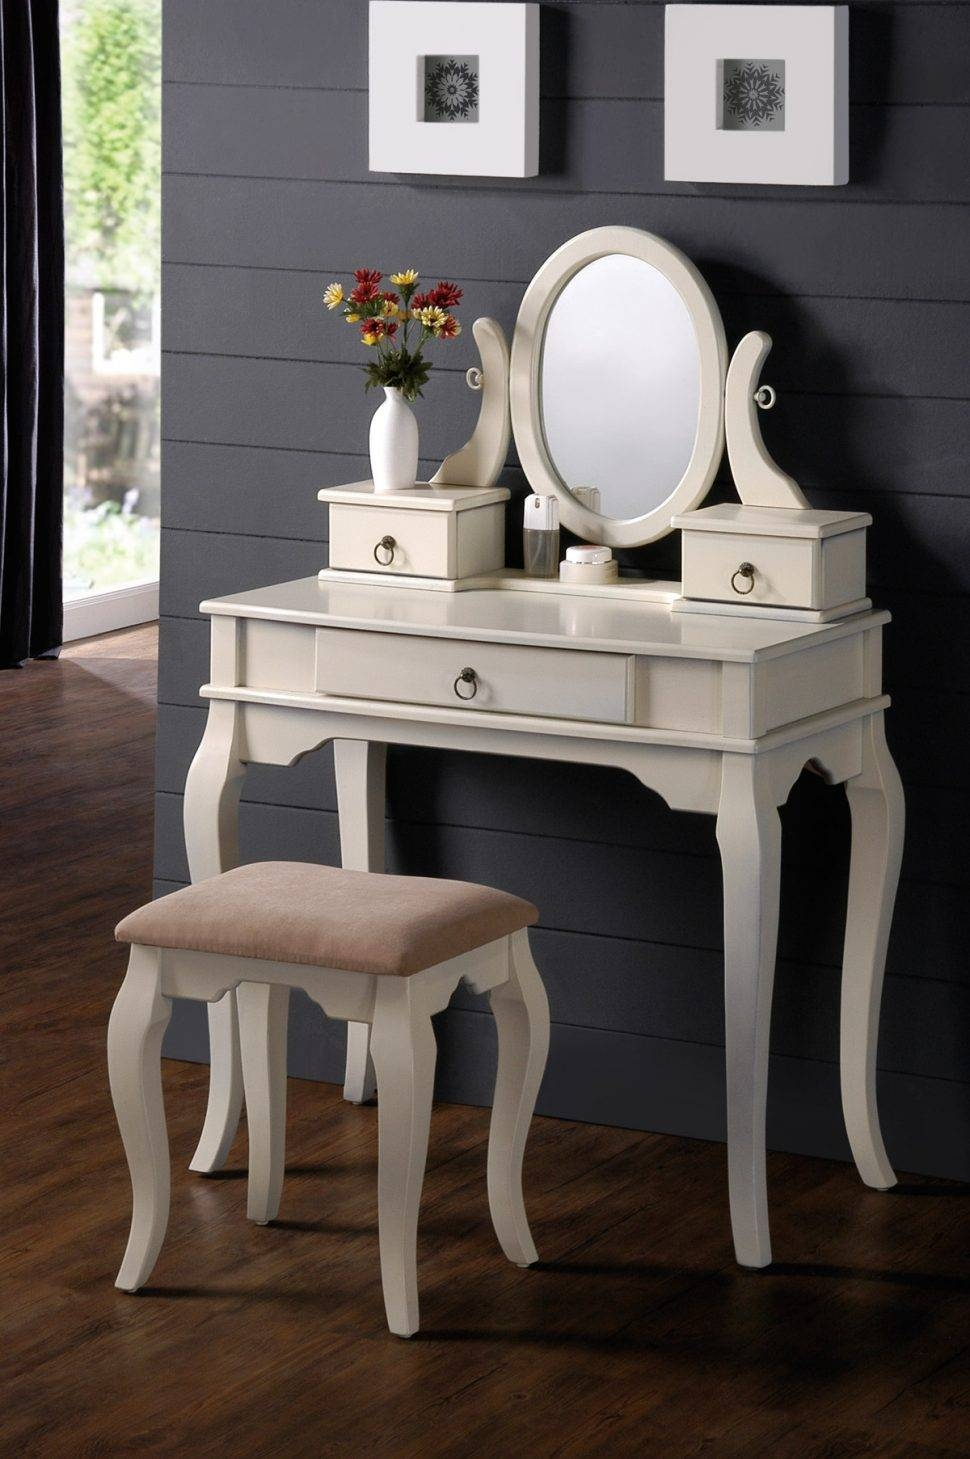 Bedroom Furniture : Wall Mirrors Decorative Black Dressing Table Throughout Black Dressing Mirrors (View 5 of 25)